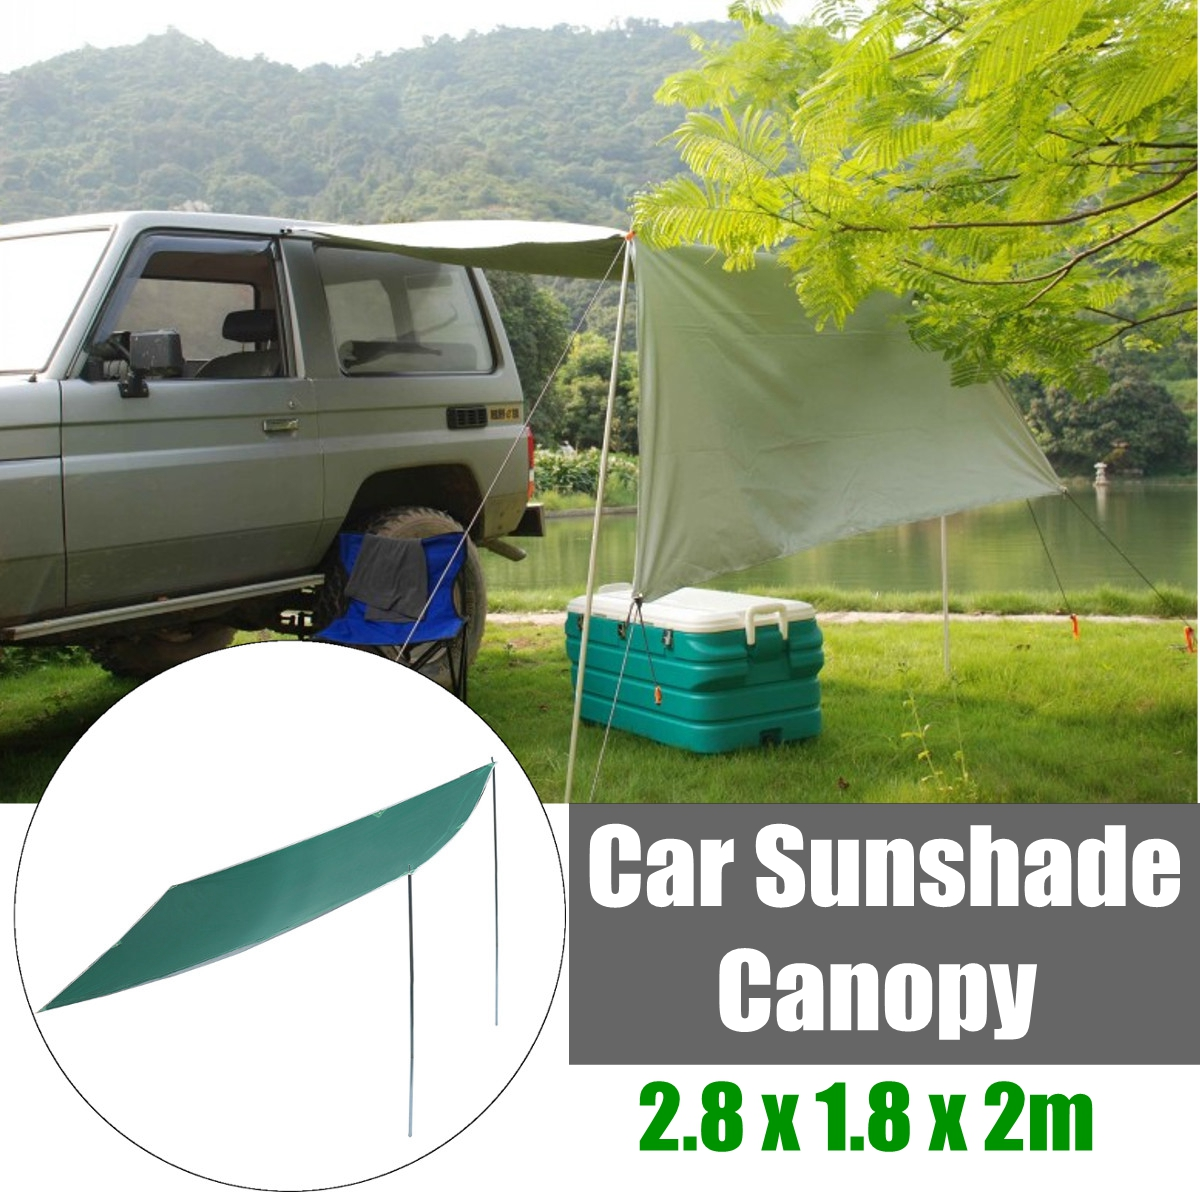 2.8 x 1.8m Sunshade Tent Car Outdoor Folding Waterproof Camping Roof SUV Rooftop Awning Shelter Car Tent Trailer Camping Travel2.8 x 1.8m Sunshade Tent Car Outdoor Folding Waterproof Camping Roof SUV Rooftop Awning Shelter Car Tent Trailer Camping Travel